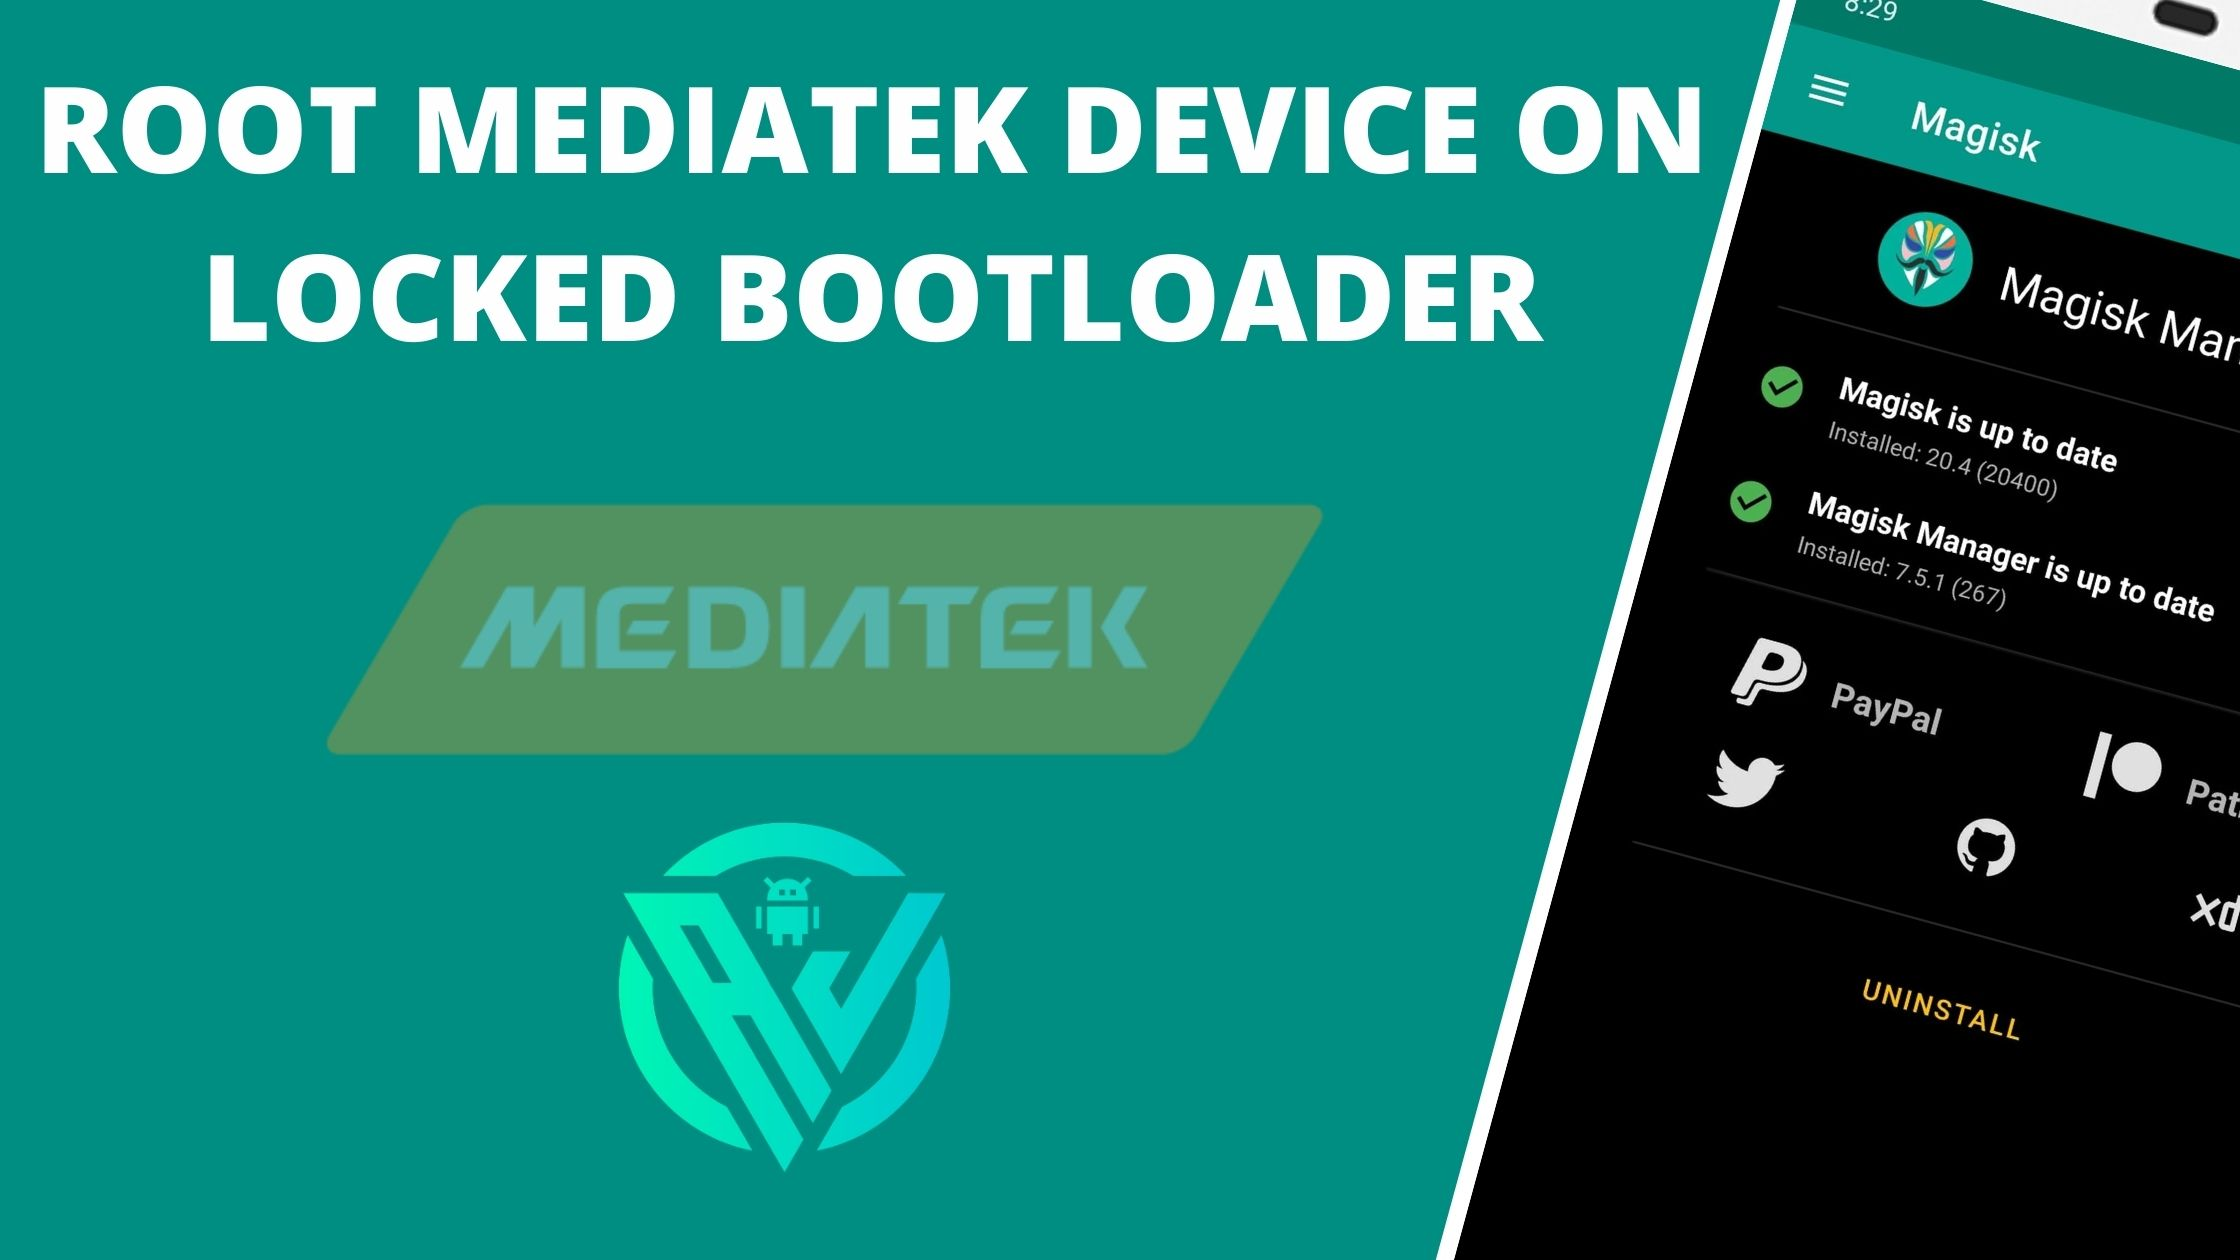 Root MediaTek Device on Locked Bootloader